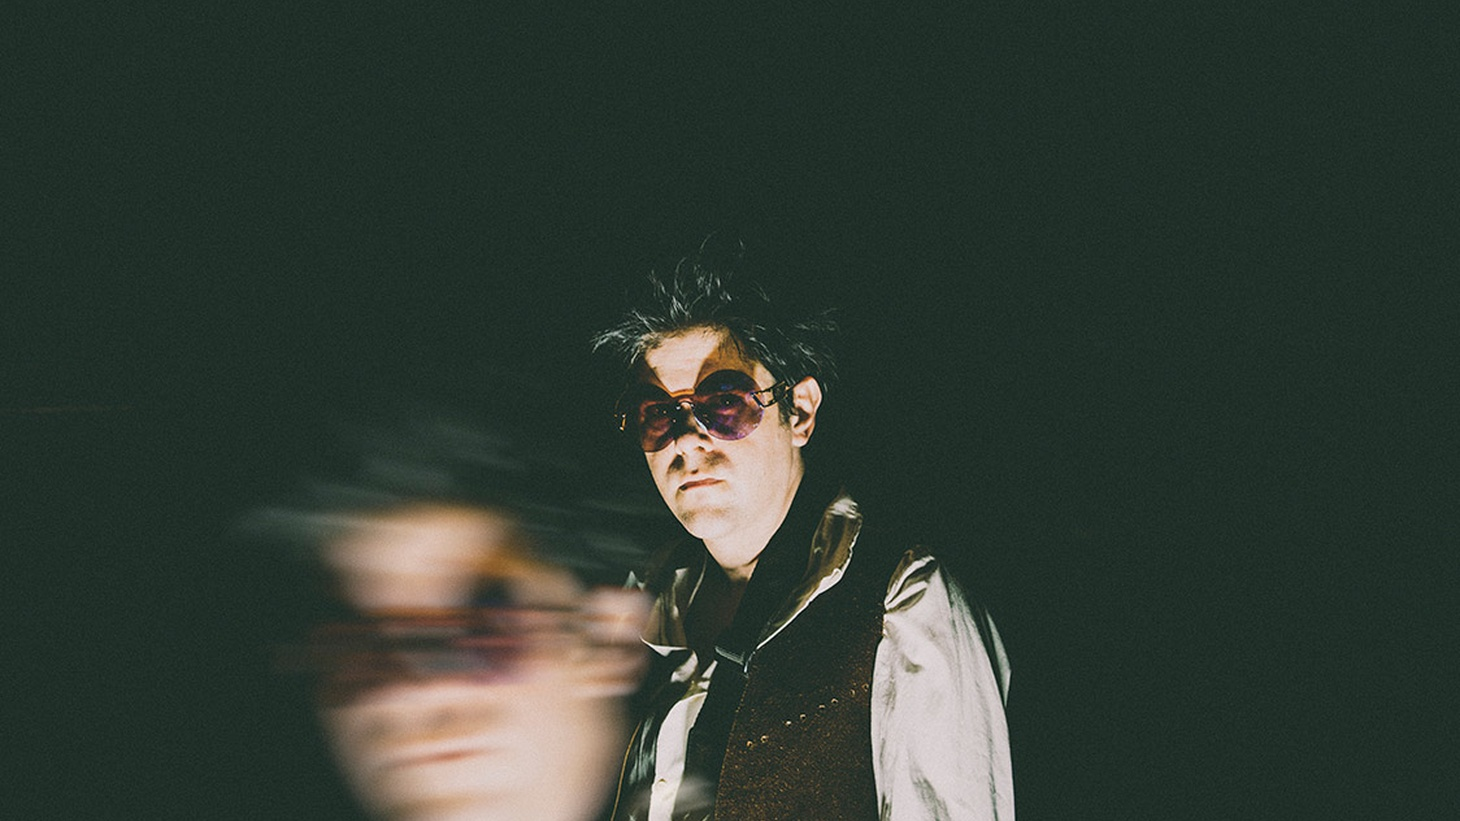 Ariel Pink has dedicated his new work to Bobby Jameson, a singer/songwriter with a lot of promise in the early 60s whose work attracted a cult following. Recorded in his bedroom, Pink begins the album at the end of the protagonist's life and ends at the beginning.